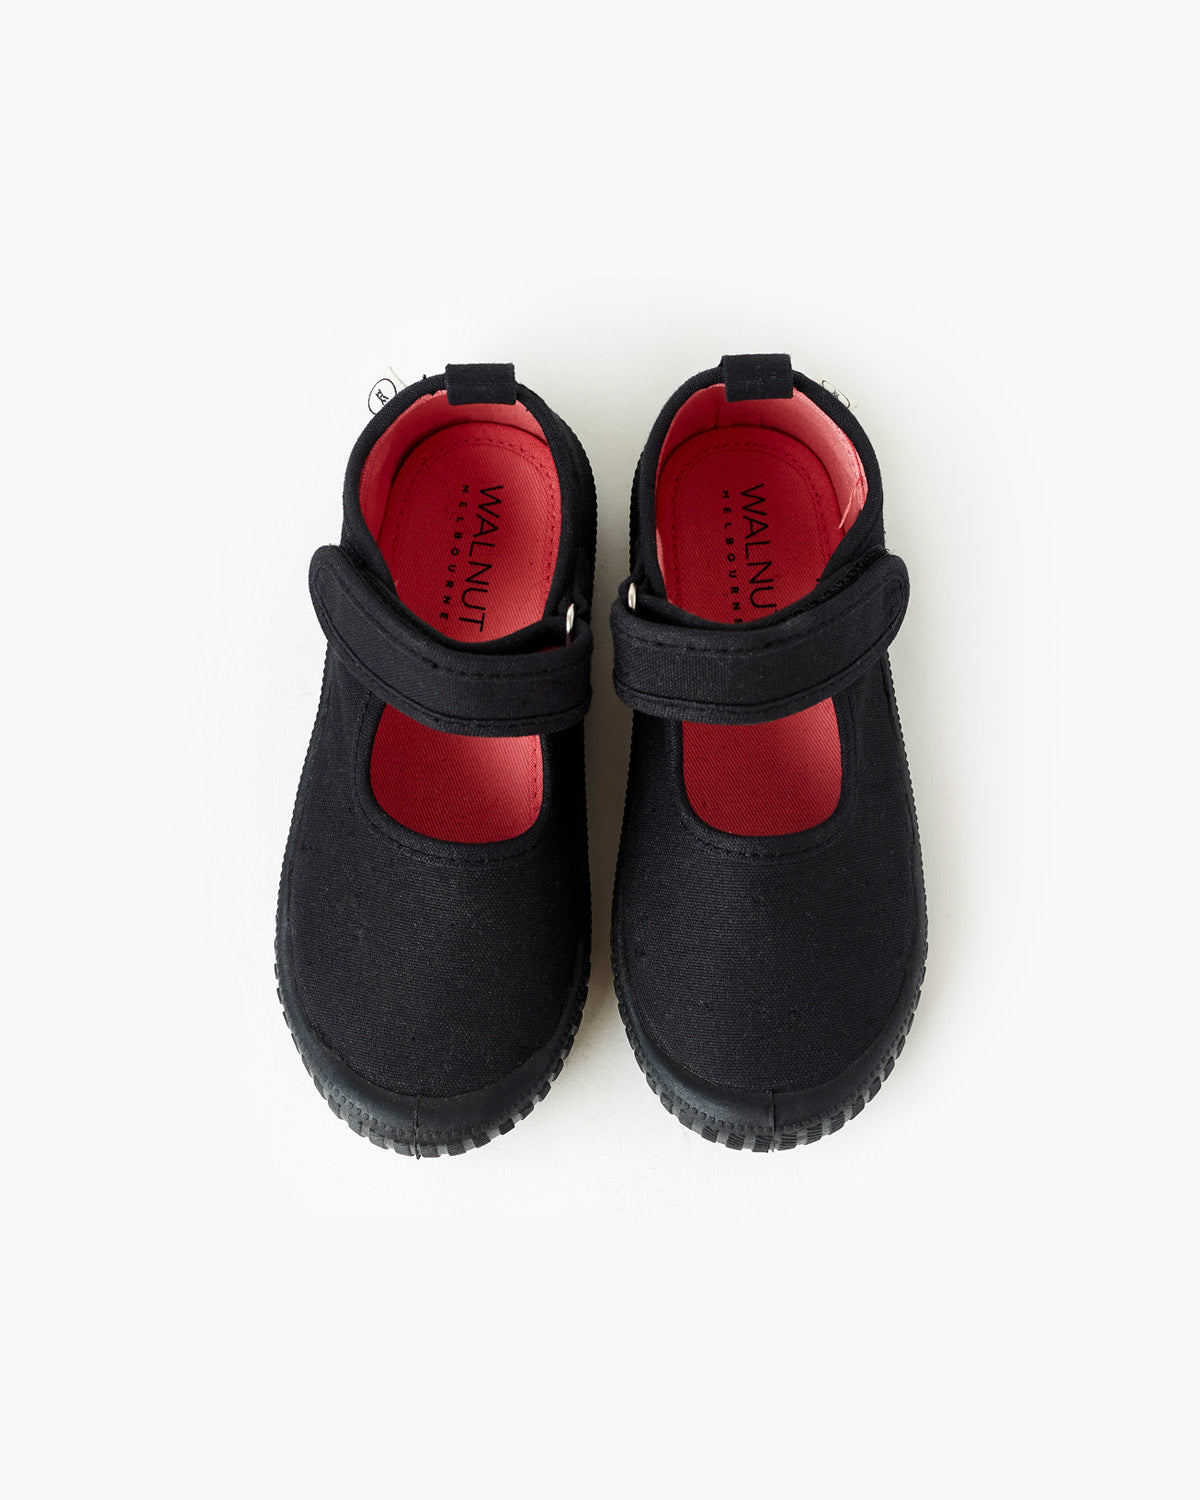 Mary Jane School Canvas - Black